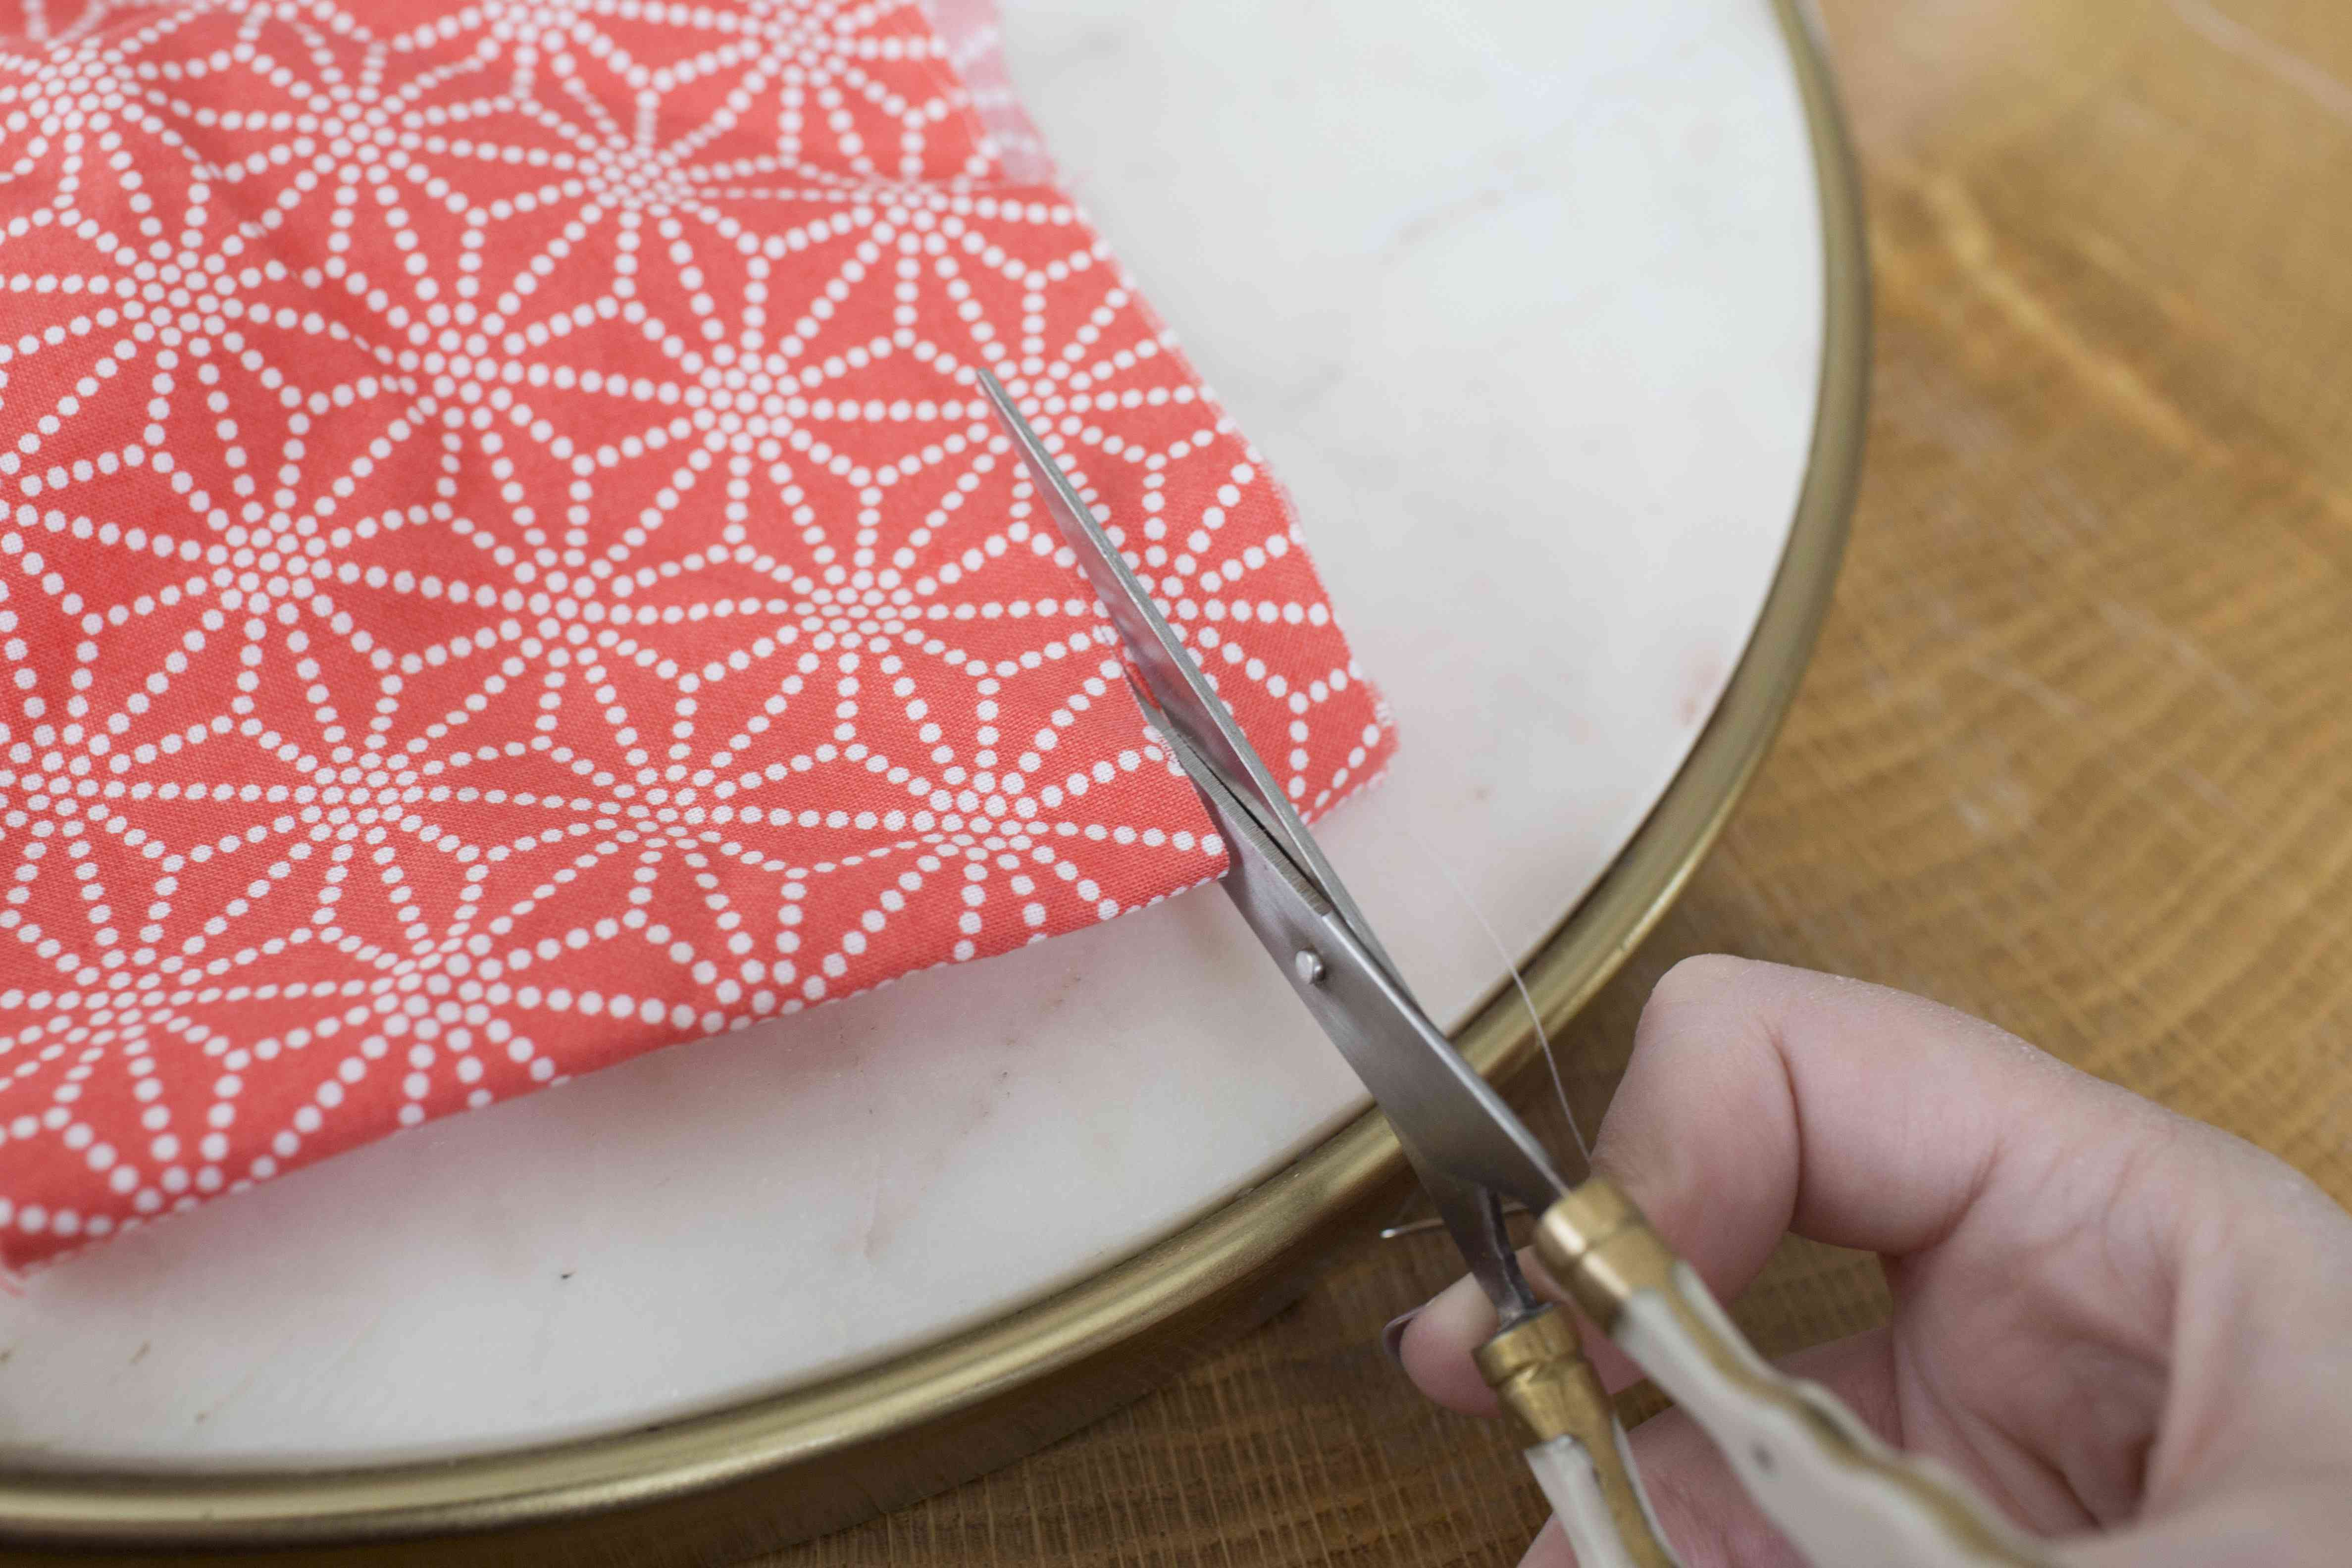 Scissors cutting into brightly patterned coral colored fabric